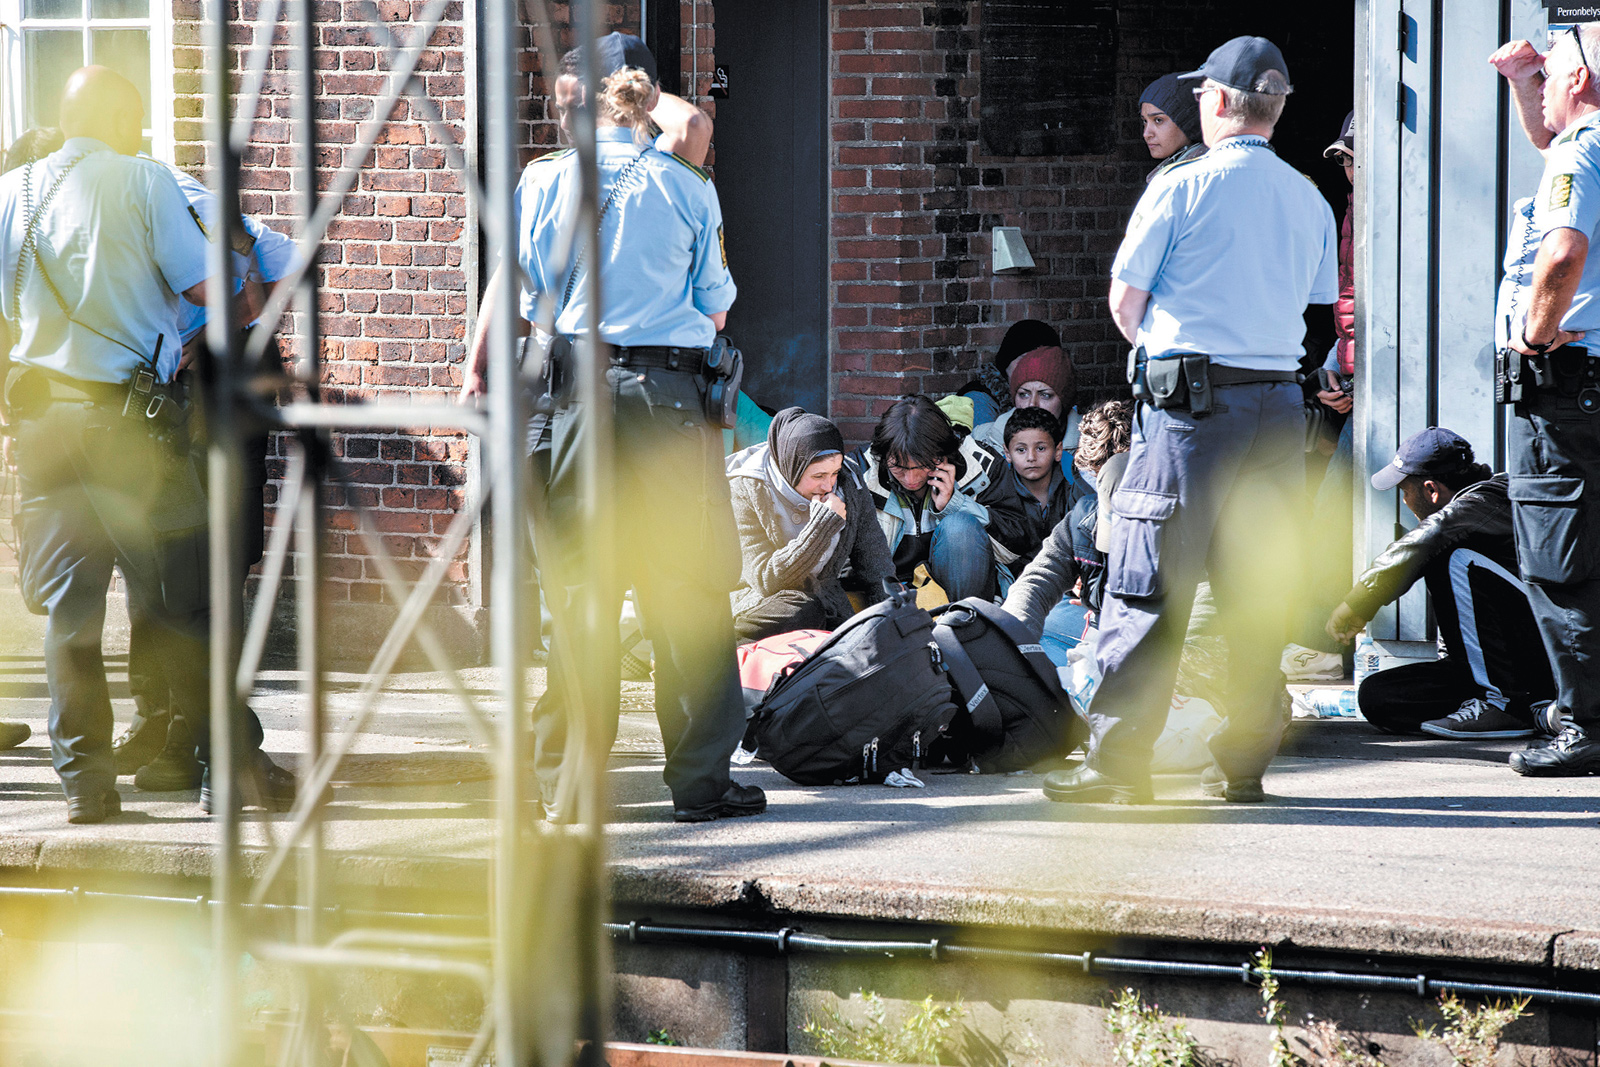 Police officers guarding refugees at Padborg Station, Denmark, after they entered the country from Germany, September 2015